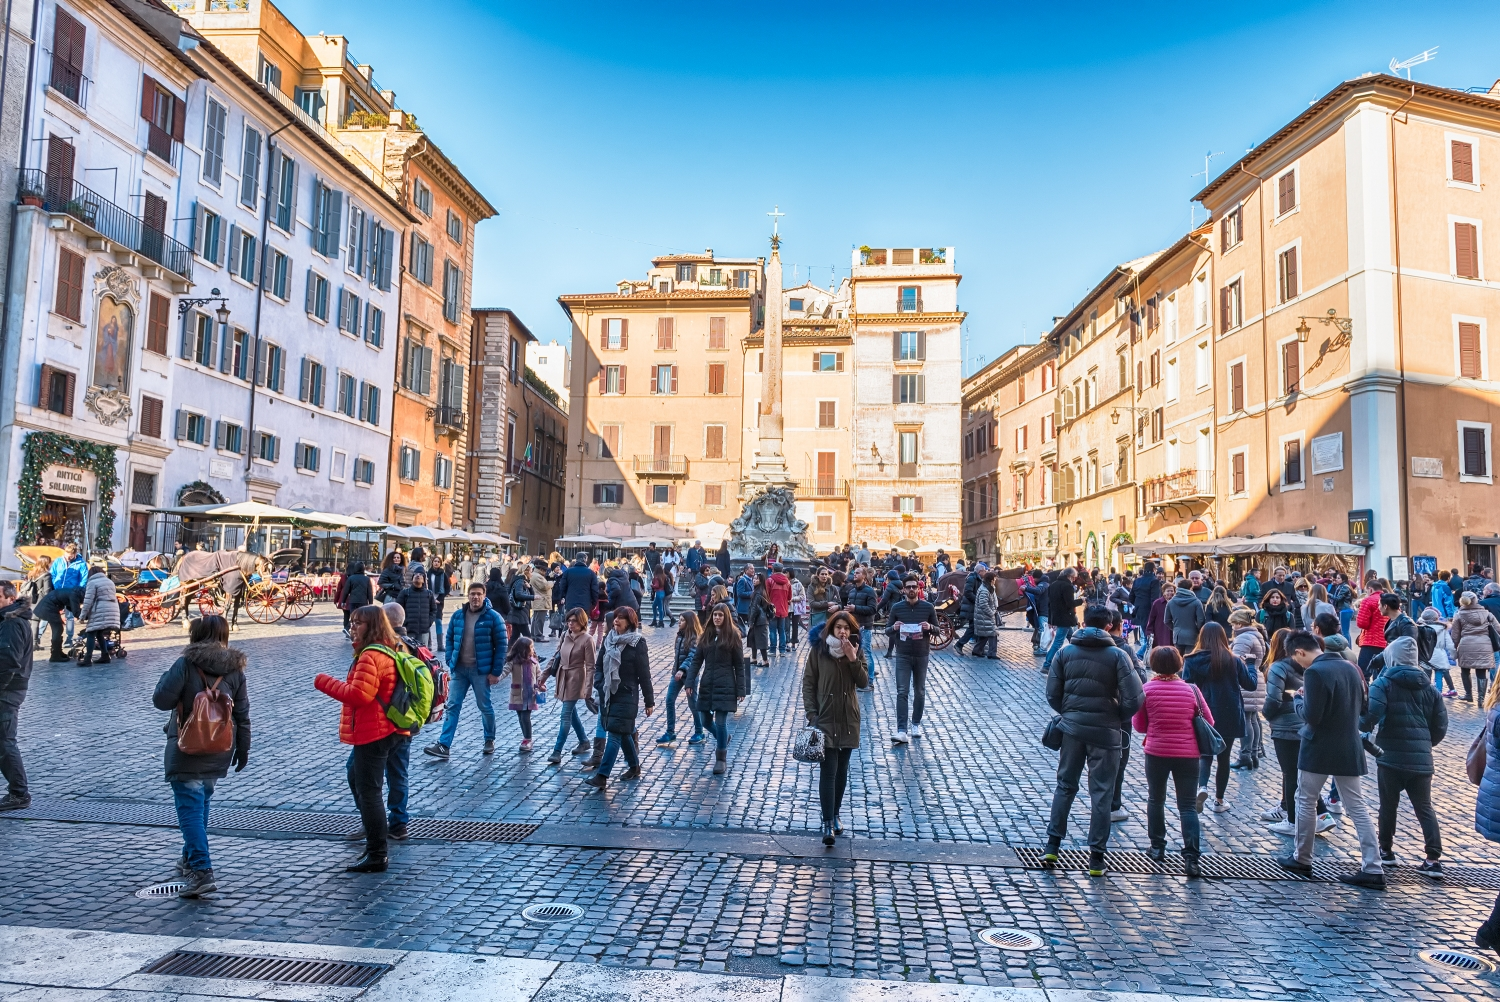 Piazza della Rotonda in front of the Pantheon, Rome, Italy